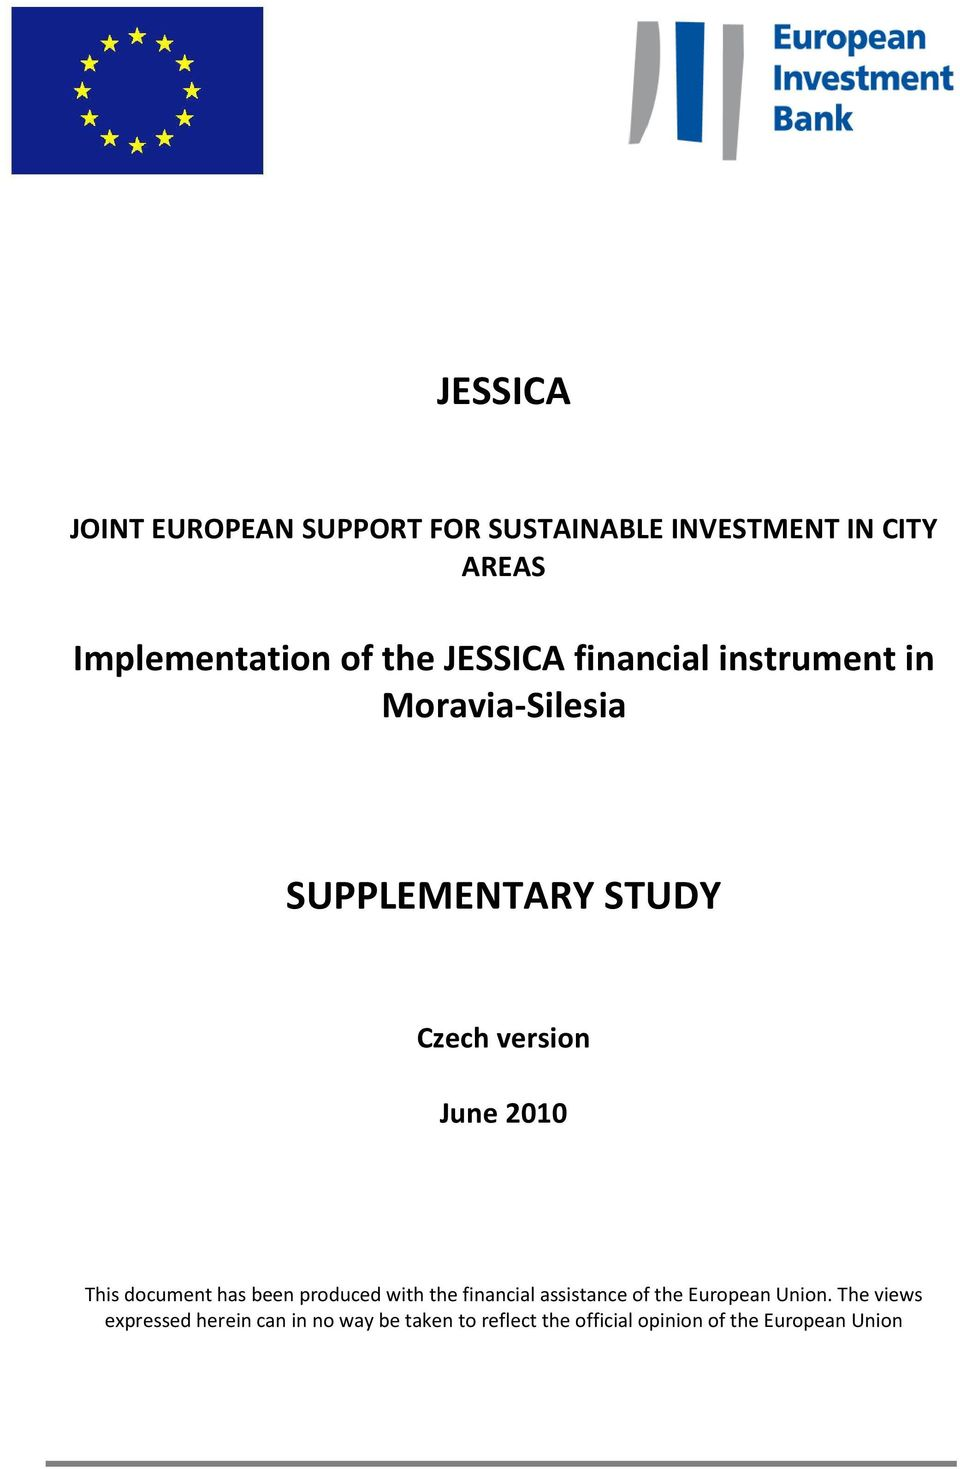 document has been produced with the financial assistance of the European Union.